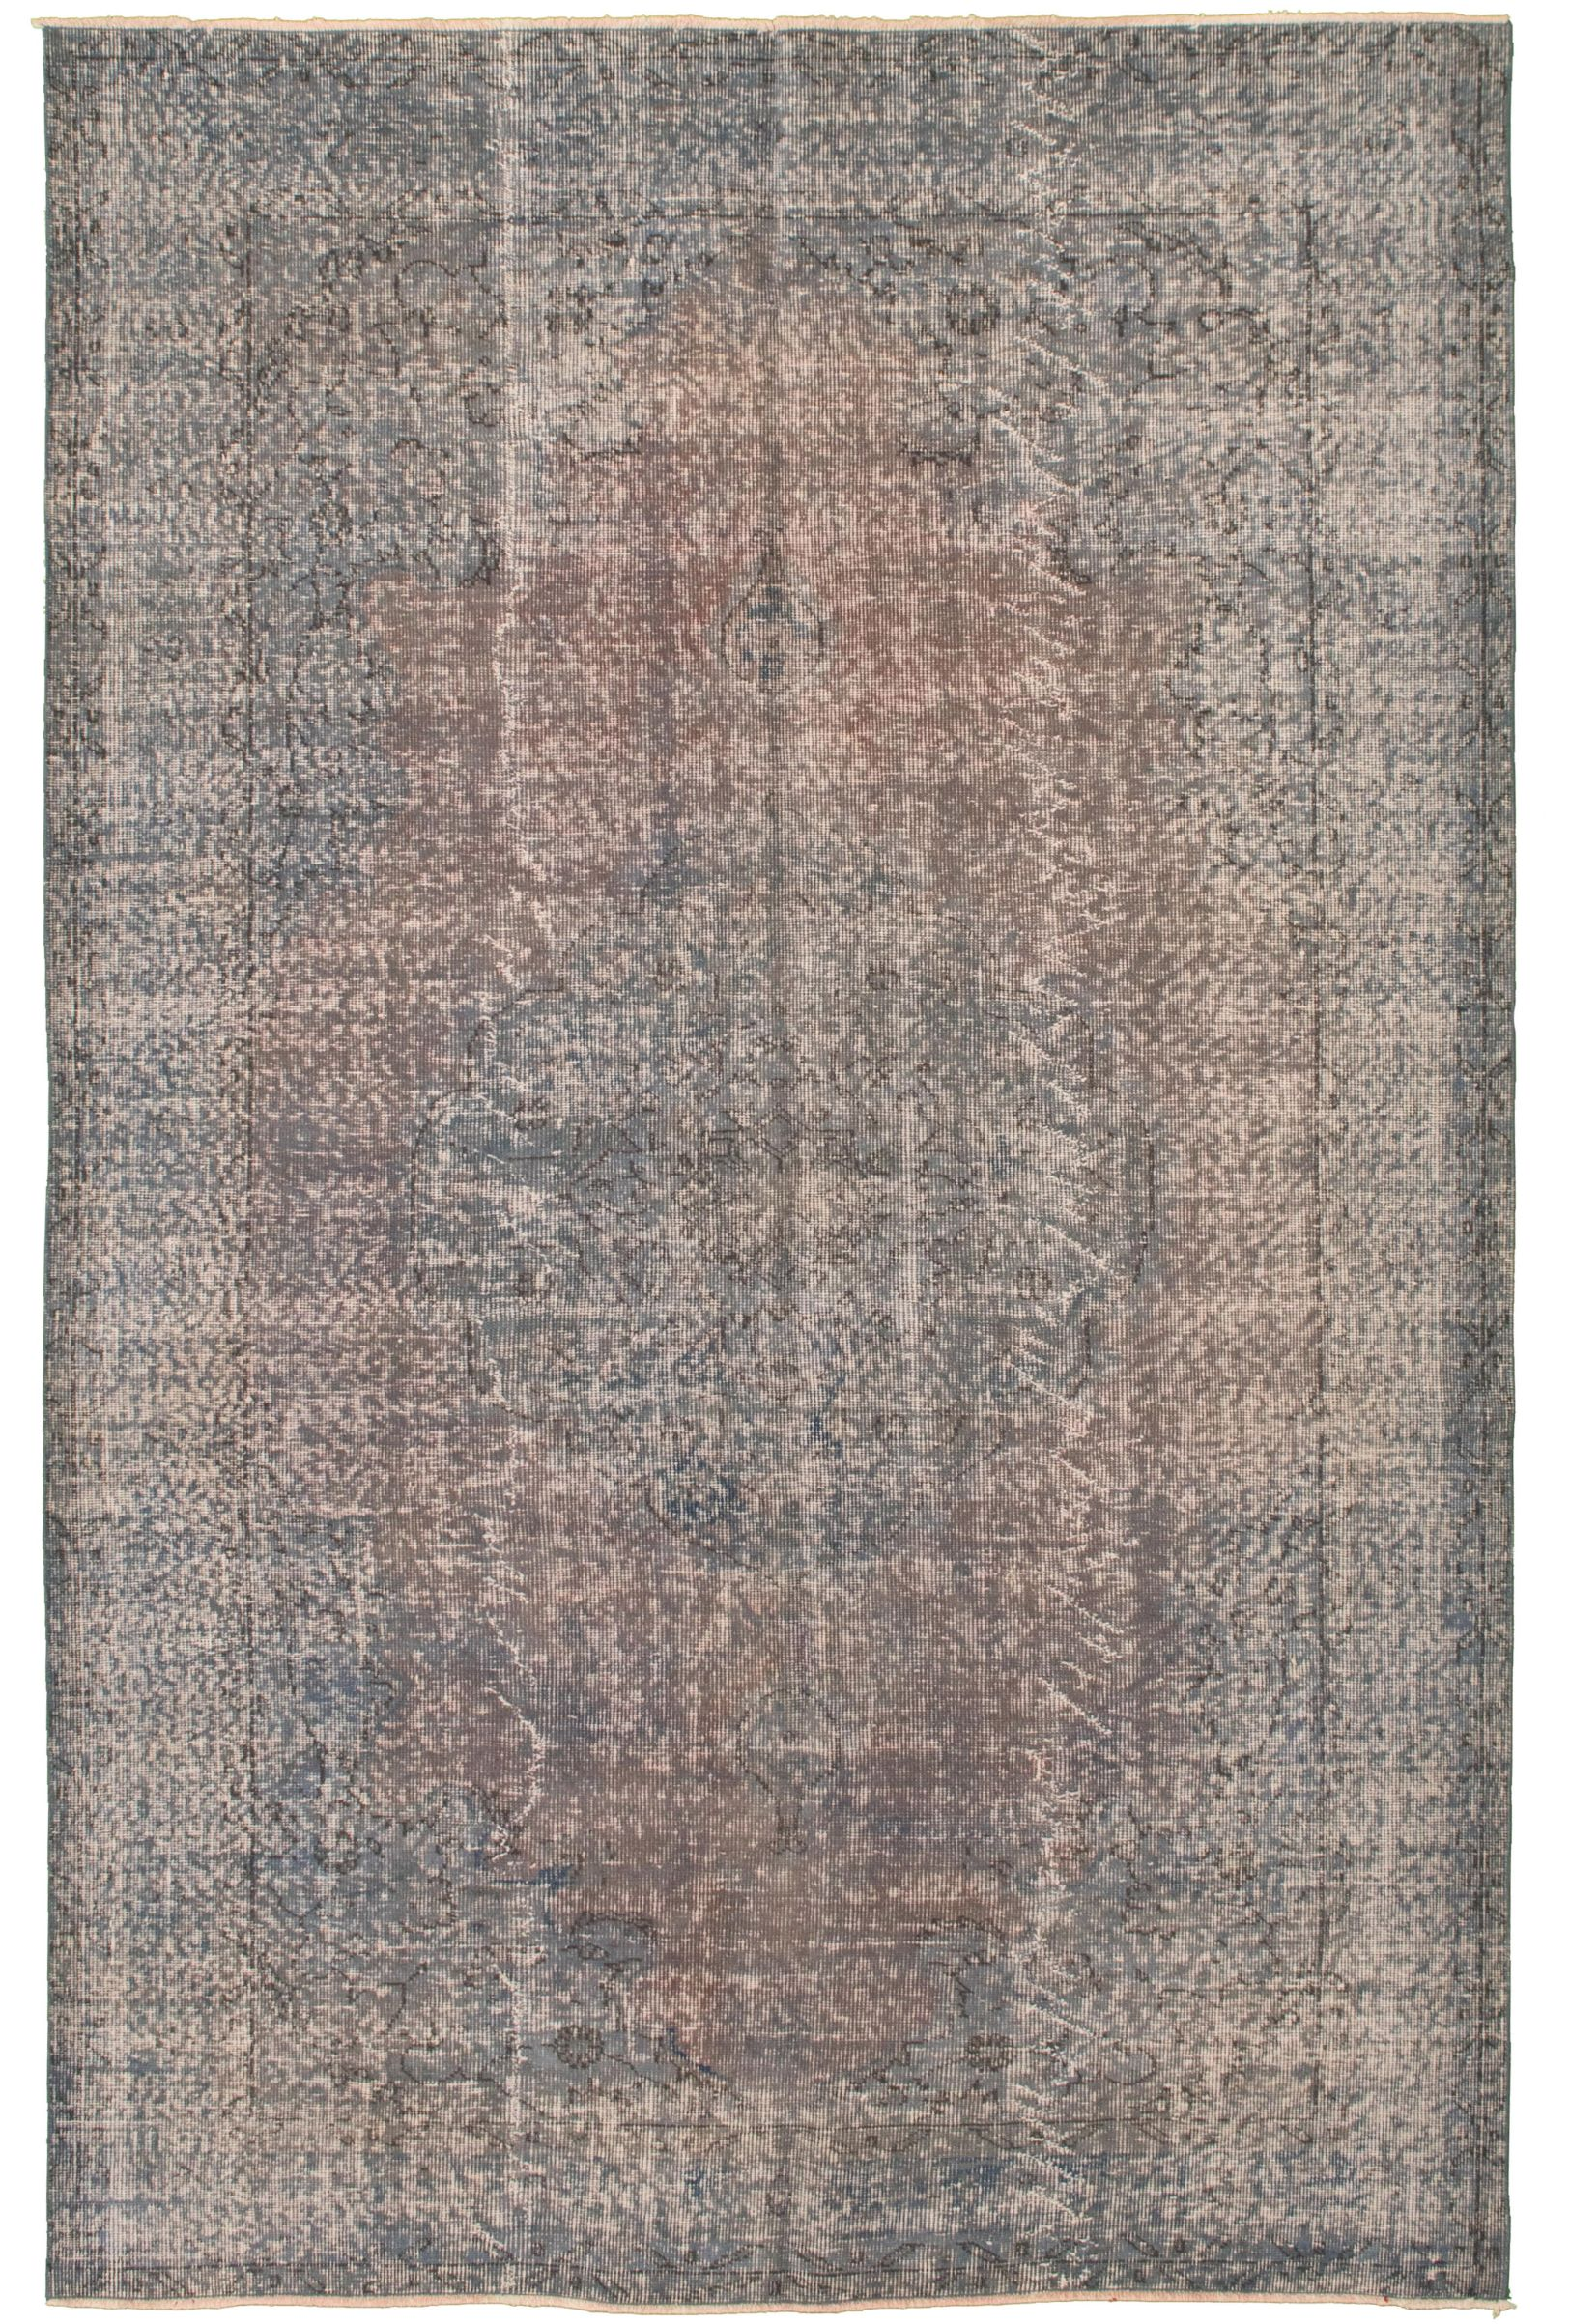 """Hand-knotted Color Transition Blue Wool Rug 5'8"""" x 9'1"""" Size: 5'8"""" x 9'1"""""""